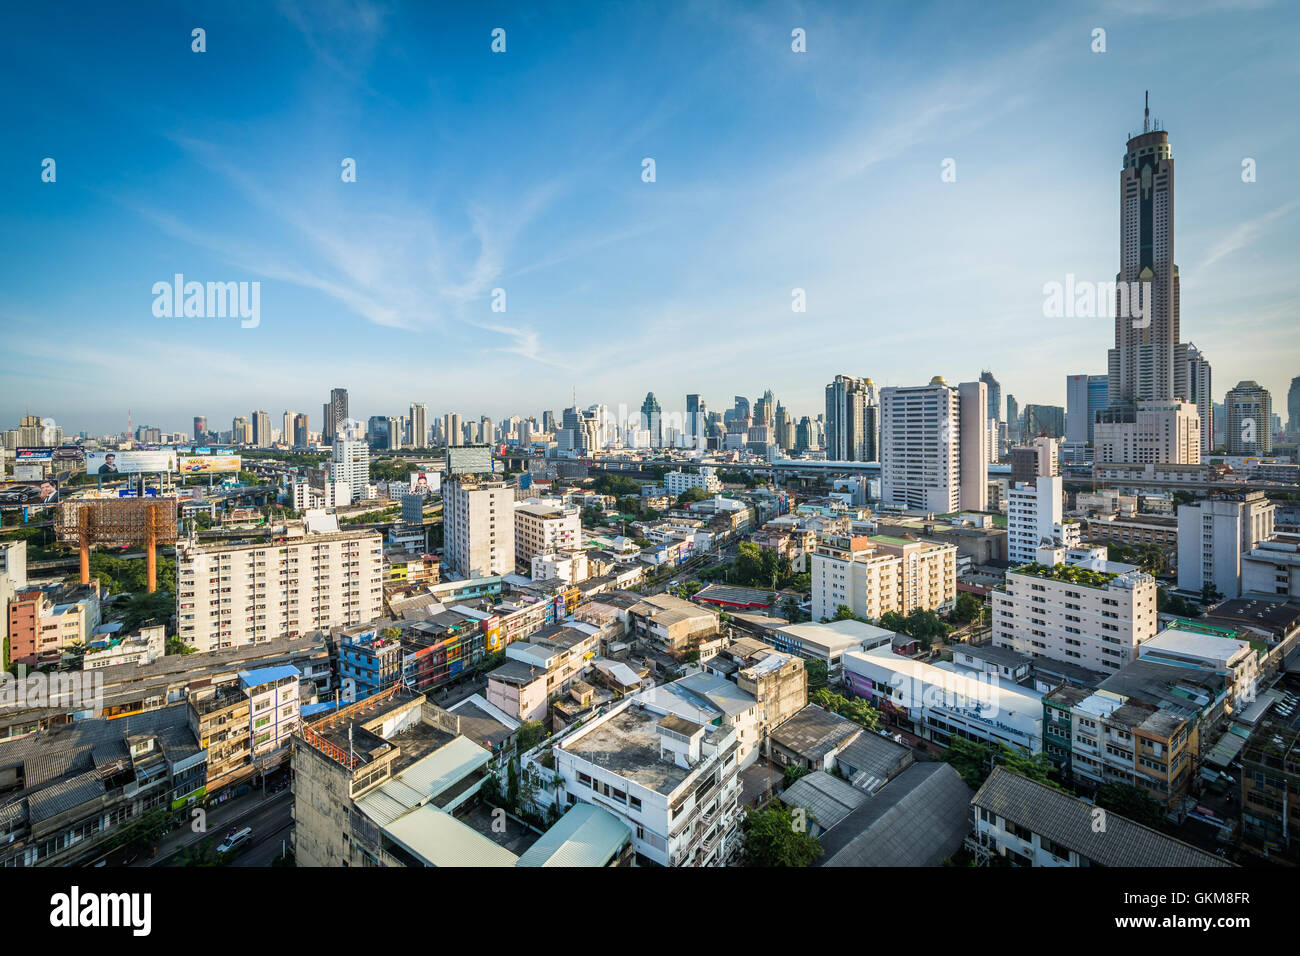 View of the Ratchathewi District, in Bangkok, Thailand. - Stock Image